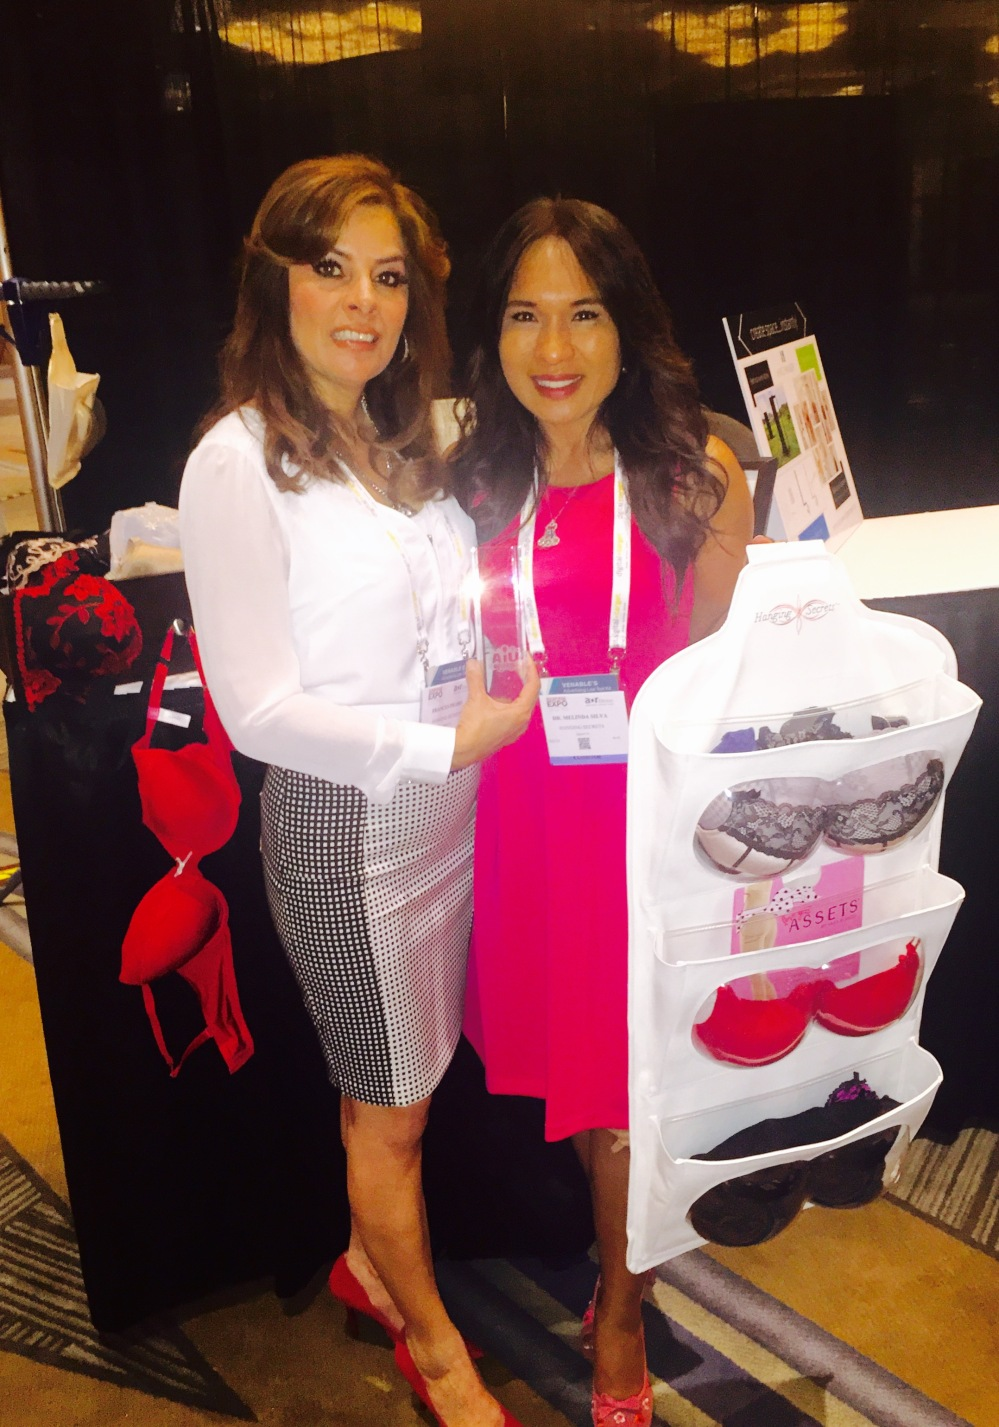 Frances Prado on left and business partner board certified anti-aging doctor Melinda Silva, MD